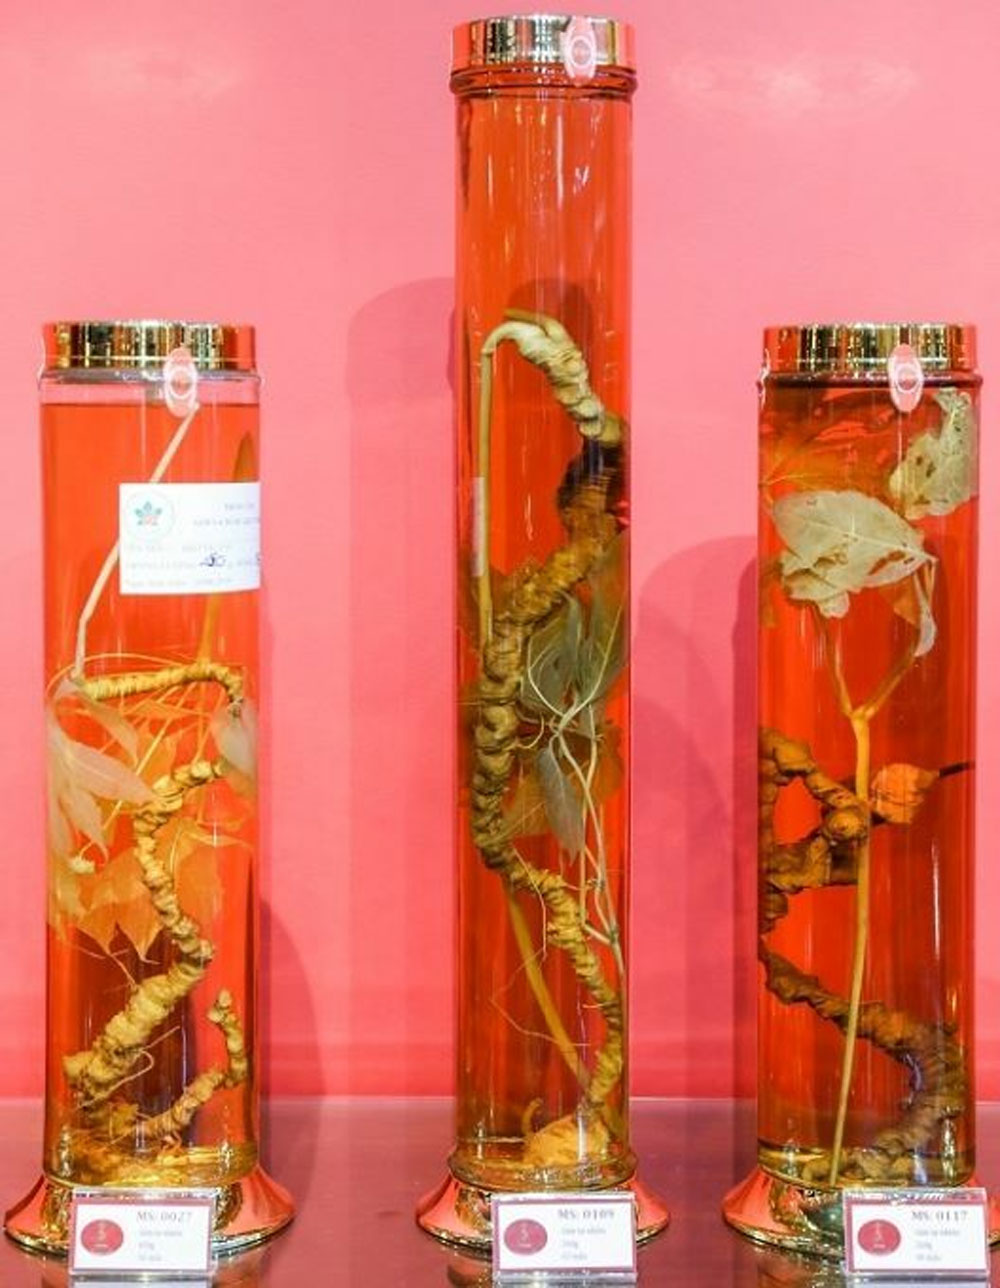 root of ginseng, Saigon museum, Ngoc Linh Ginseng Museum, national treasure, endemic species, medicinal plant frequently